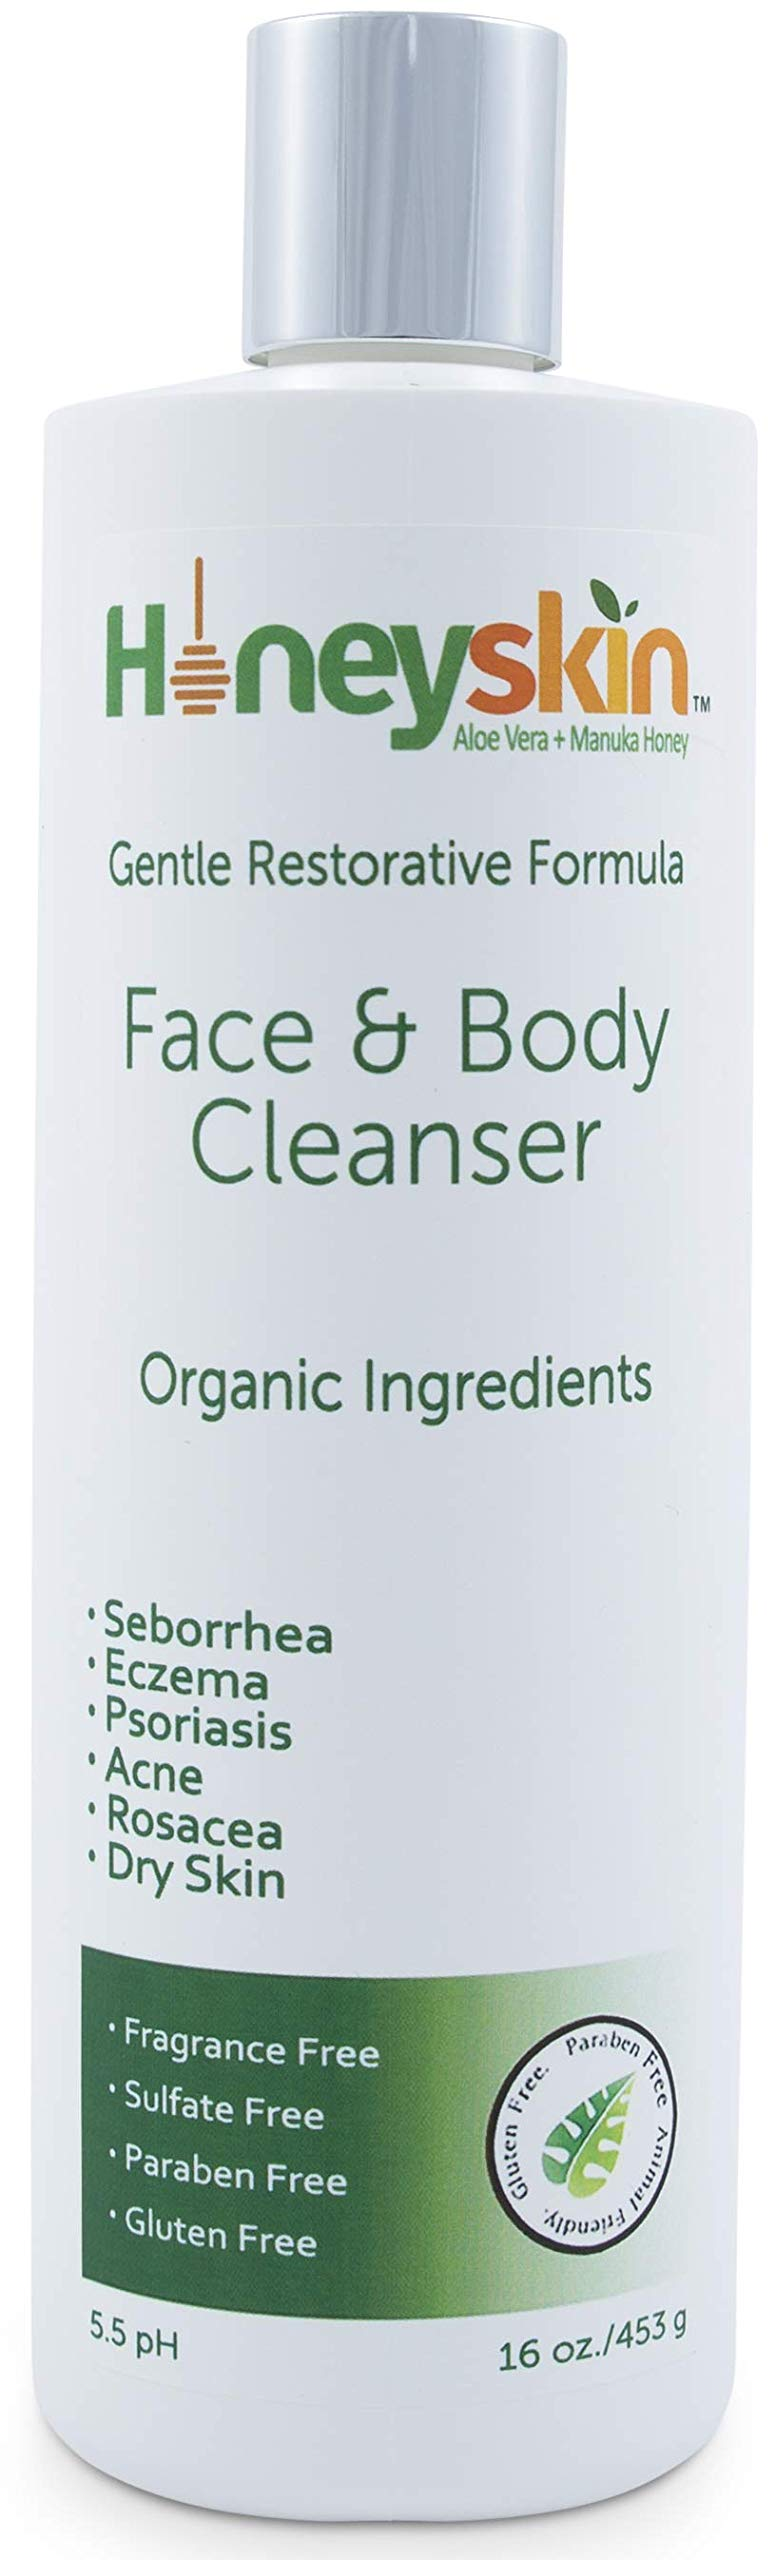 Face and Body Wash with Manuka Honey, Coconut Oil and Aloe Vera - Relieves Symptoms of Acne, Eczema, Rosacea, Psoriasis & Seborrheic Dermatitis - Treatment for Blemishes, Dry and Itchy Skin (16 oz)